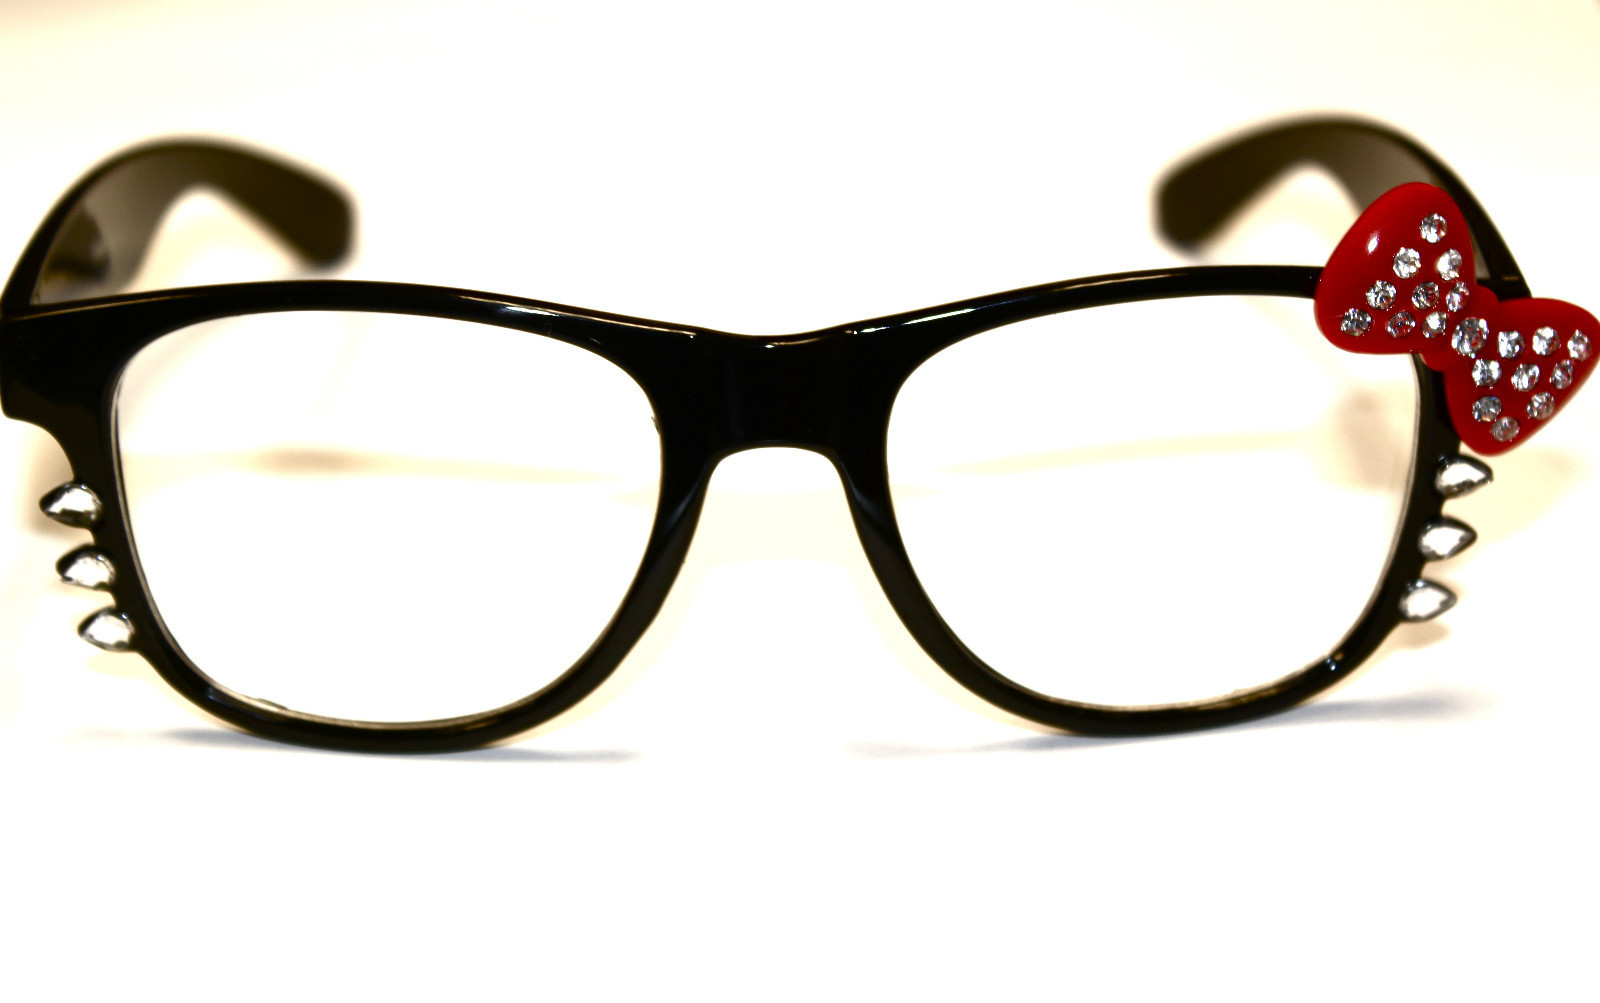 1600x1003 Geek Glasses Clipart Nerd Black With White Free